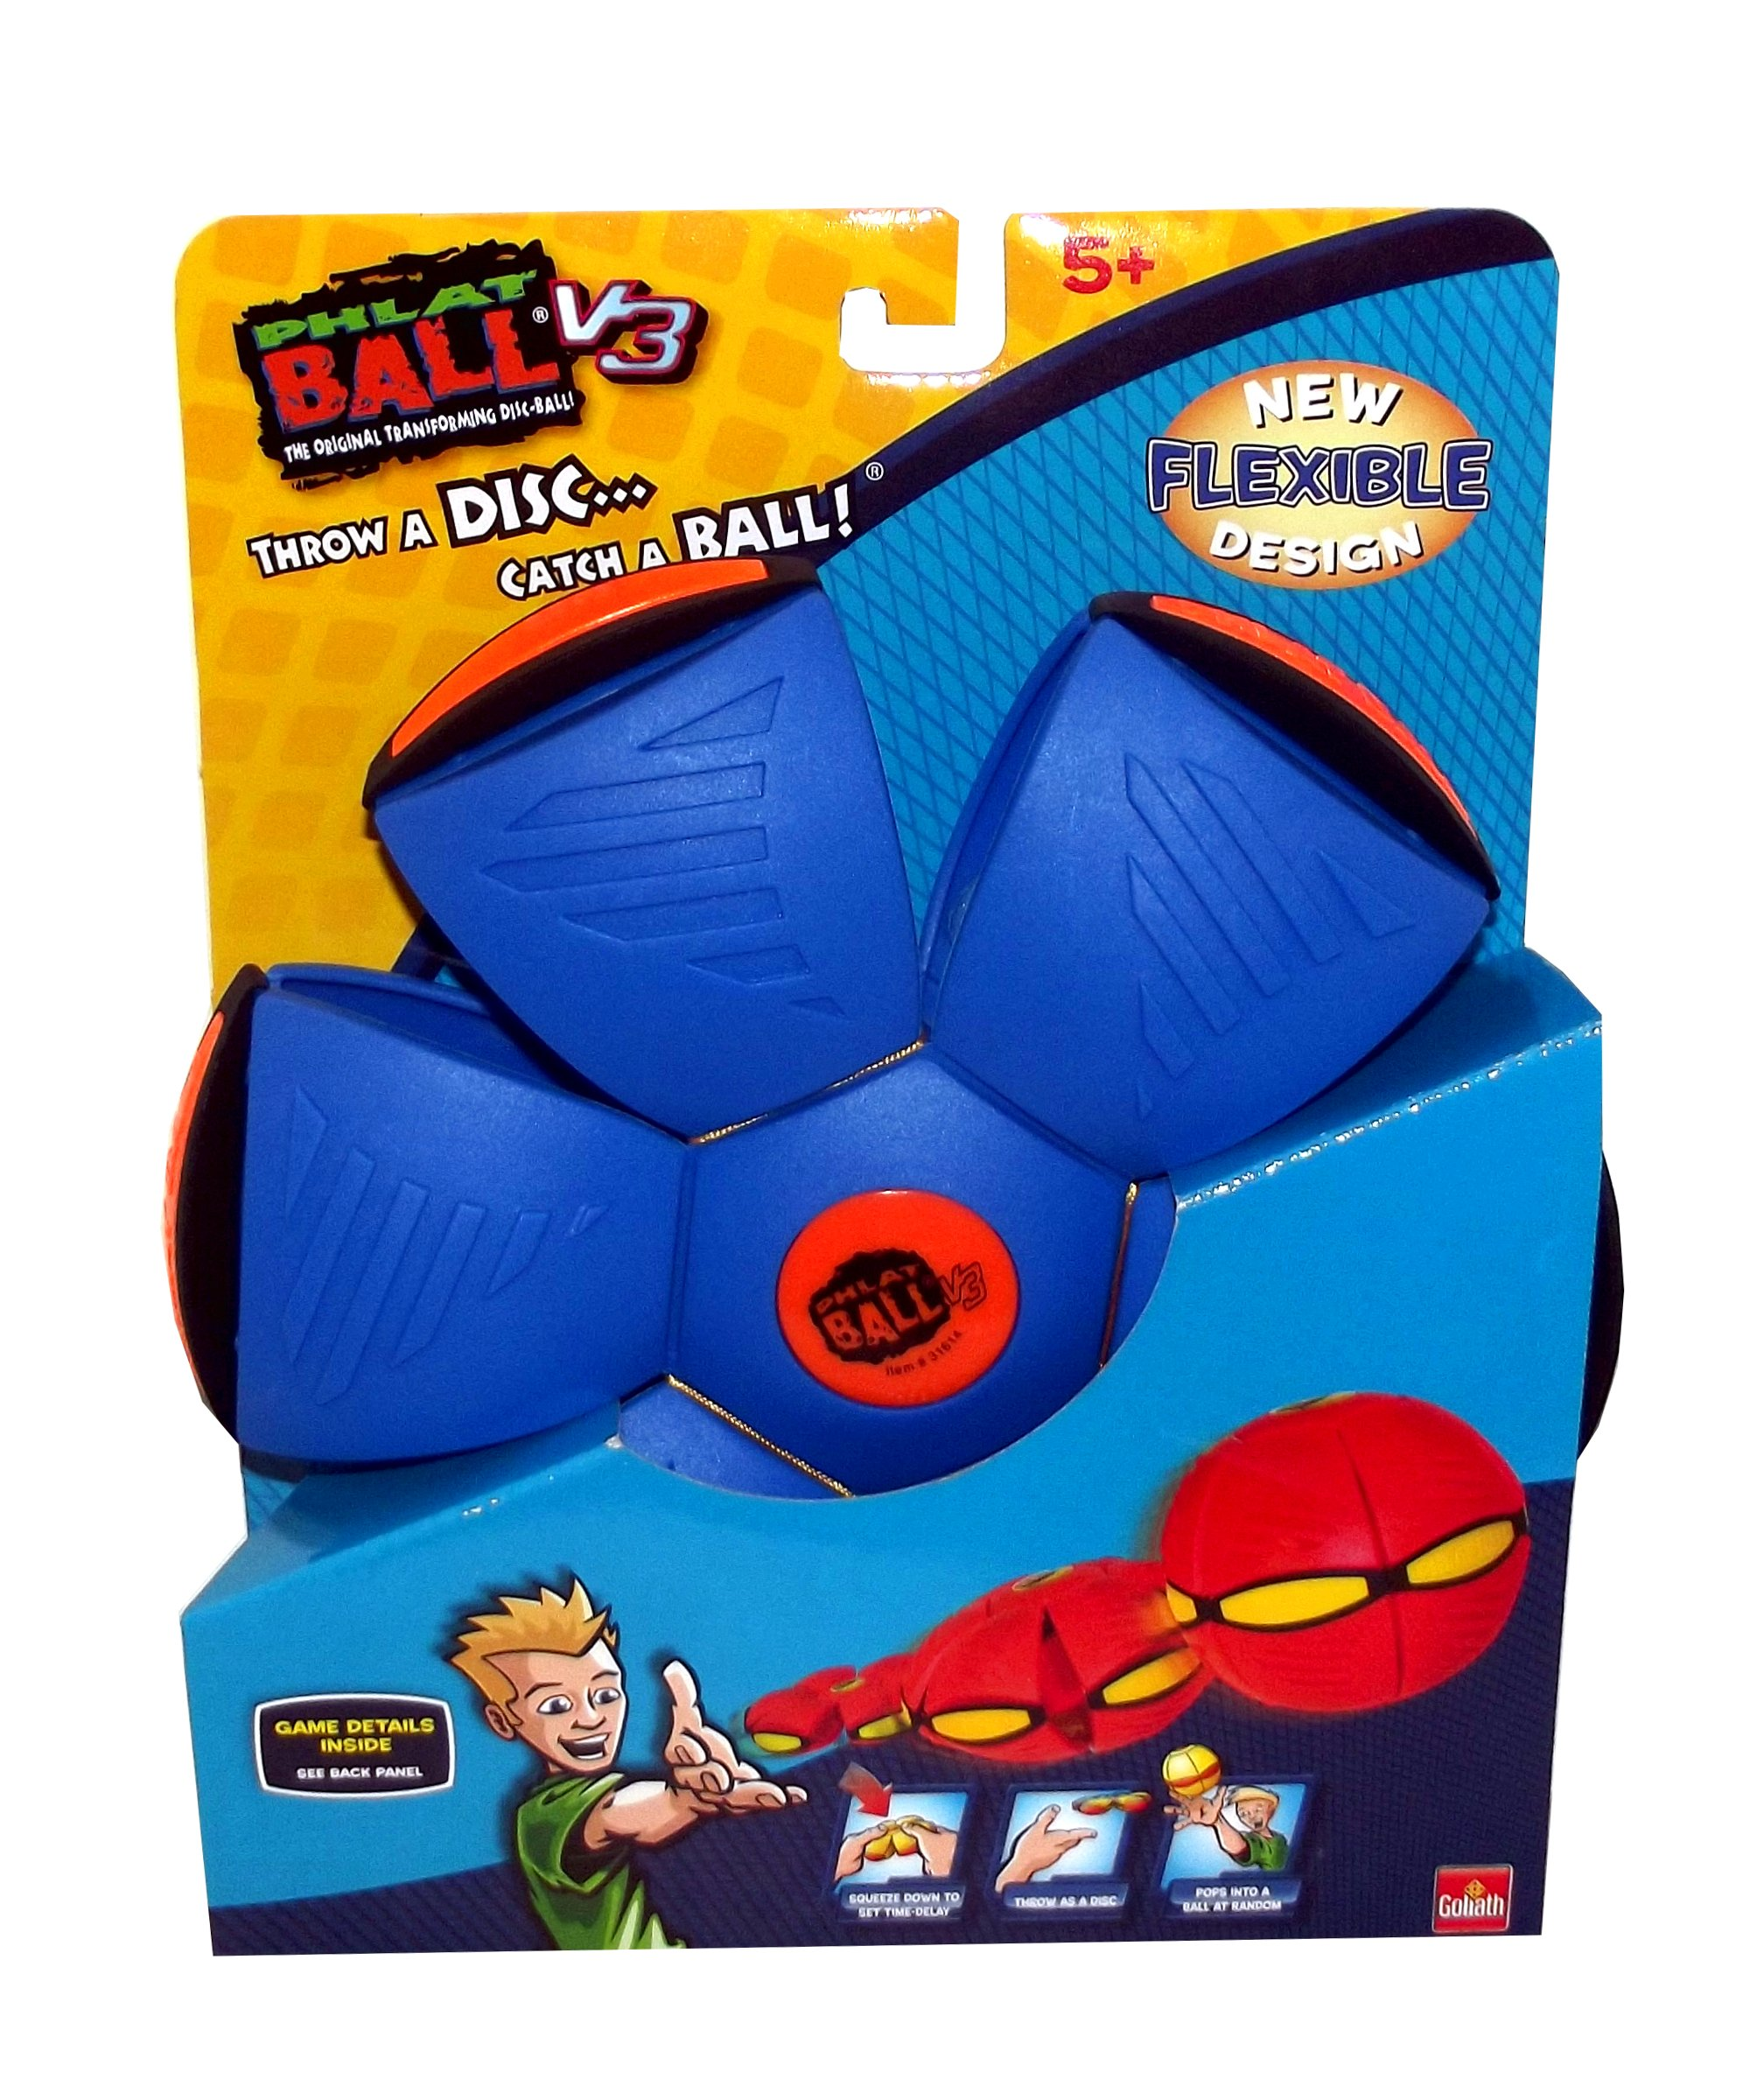 Goliath Games Phlat Ball V3, Blue by Goliath Games